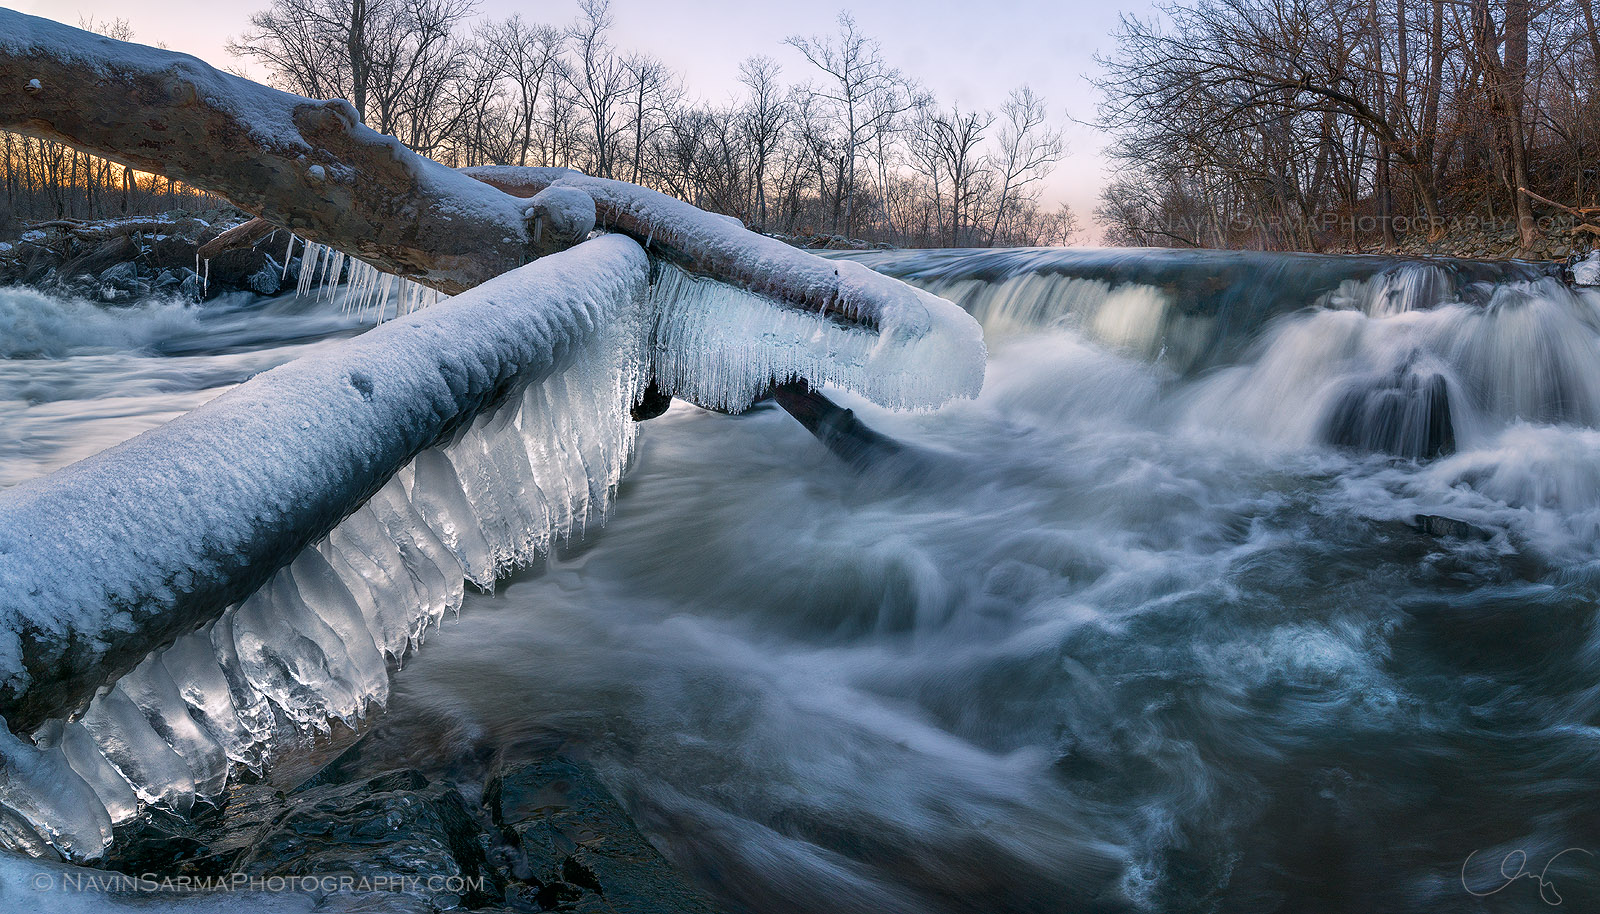 Freezing water builds a gigantic row of icicles upon fallen trees in Great Falls, Maryland.